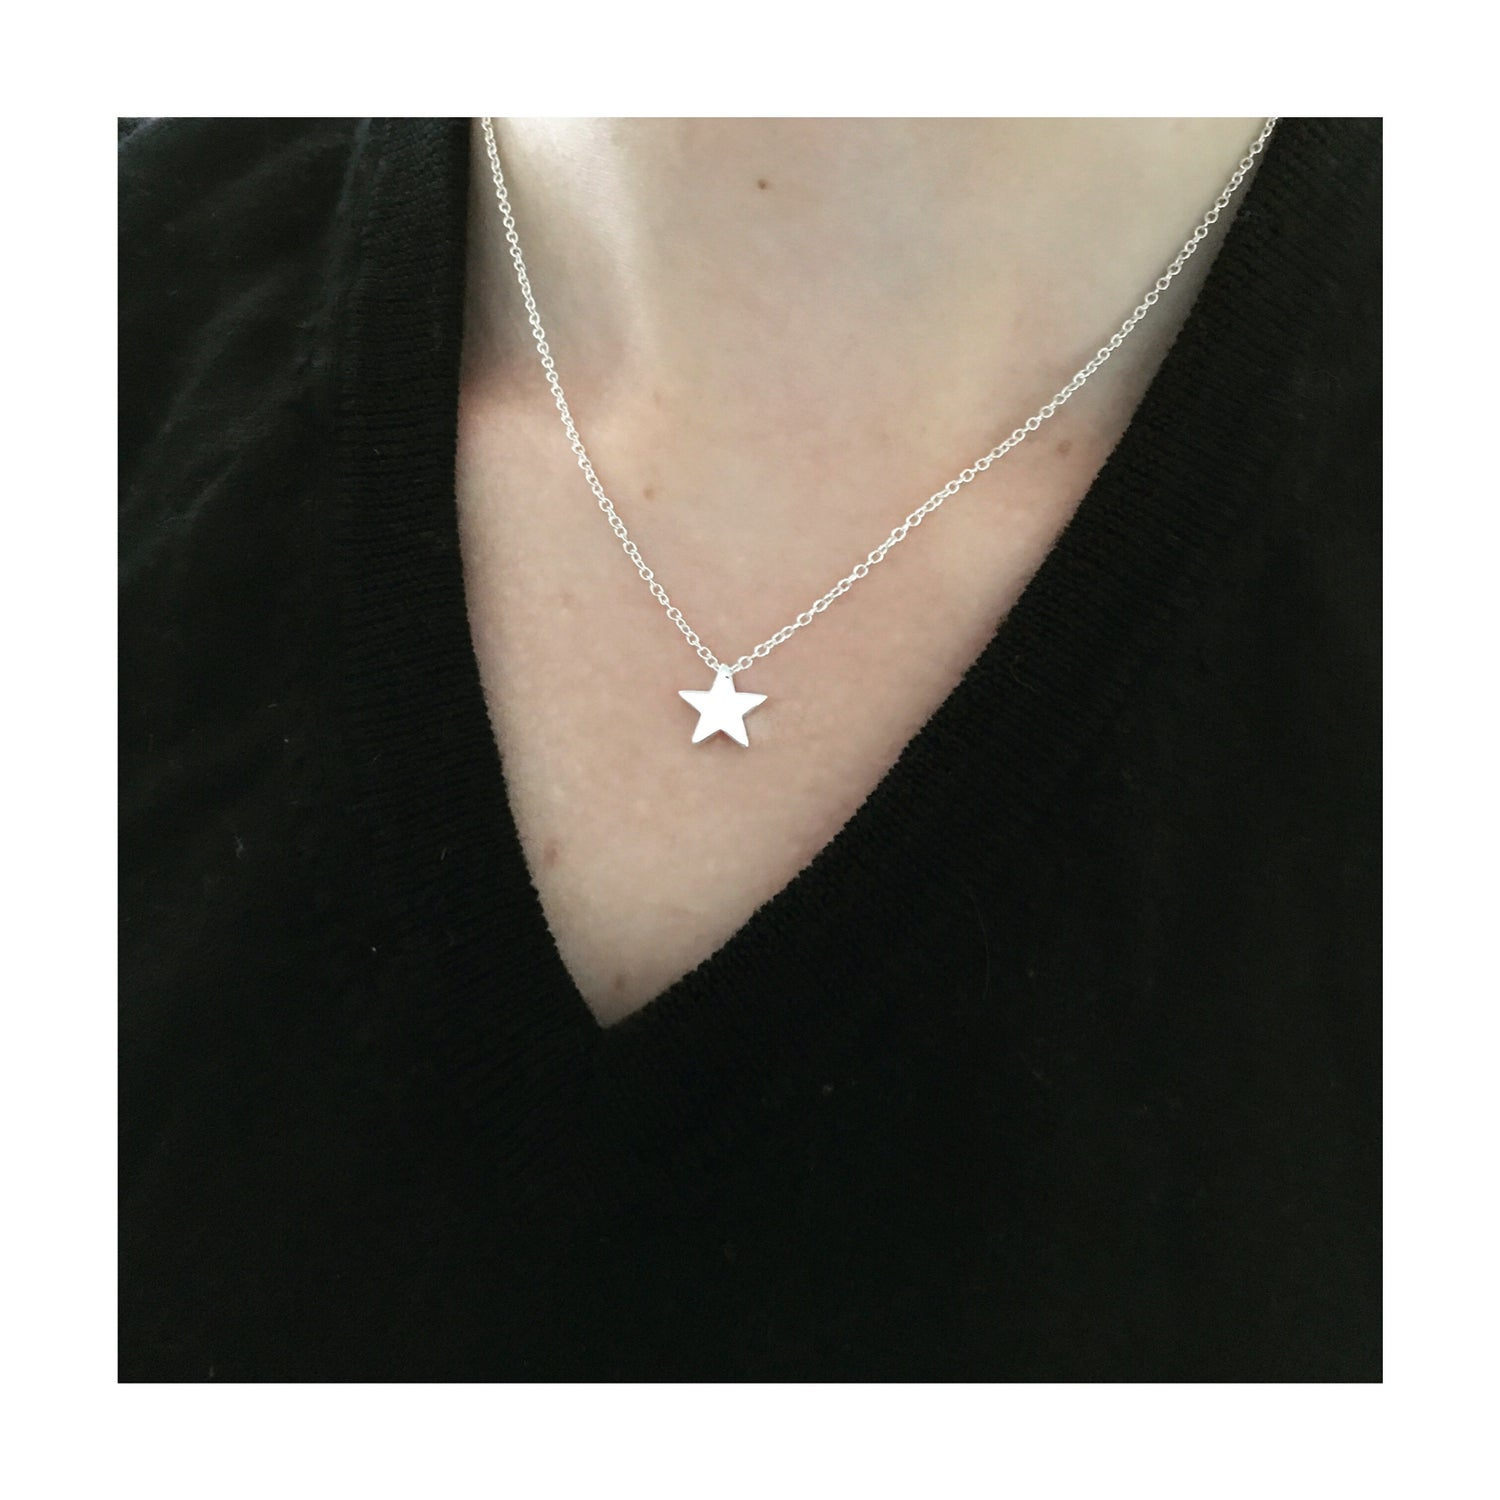 Image of Star Choker Necklace (Silver / Gold)